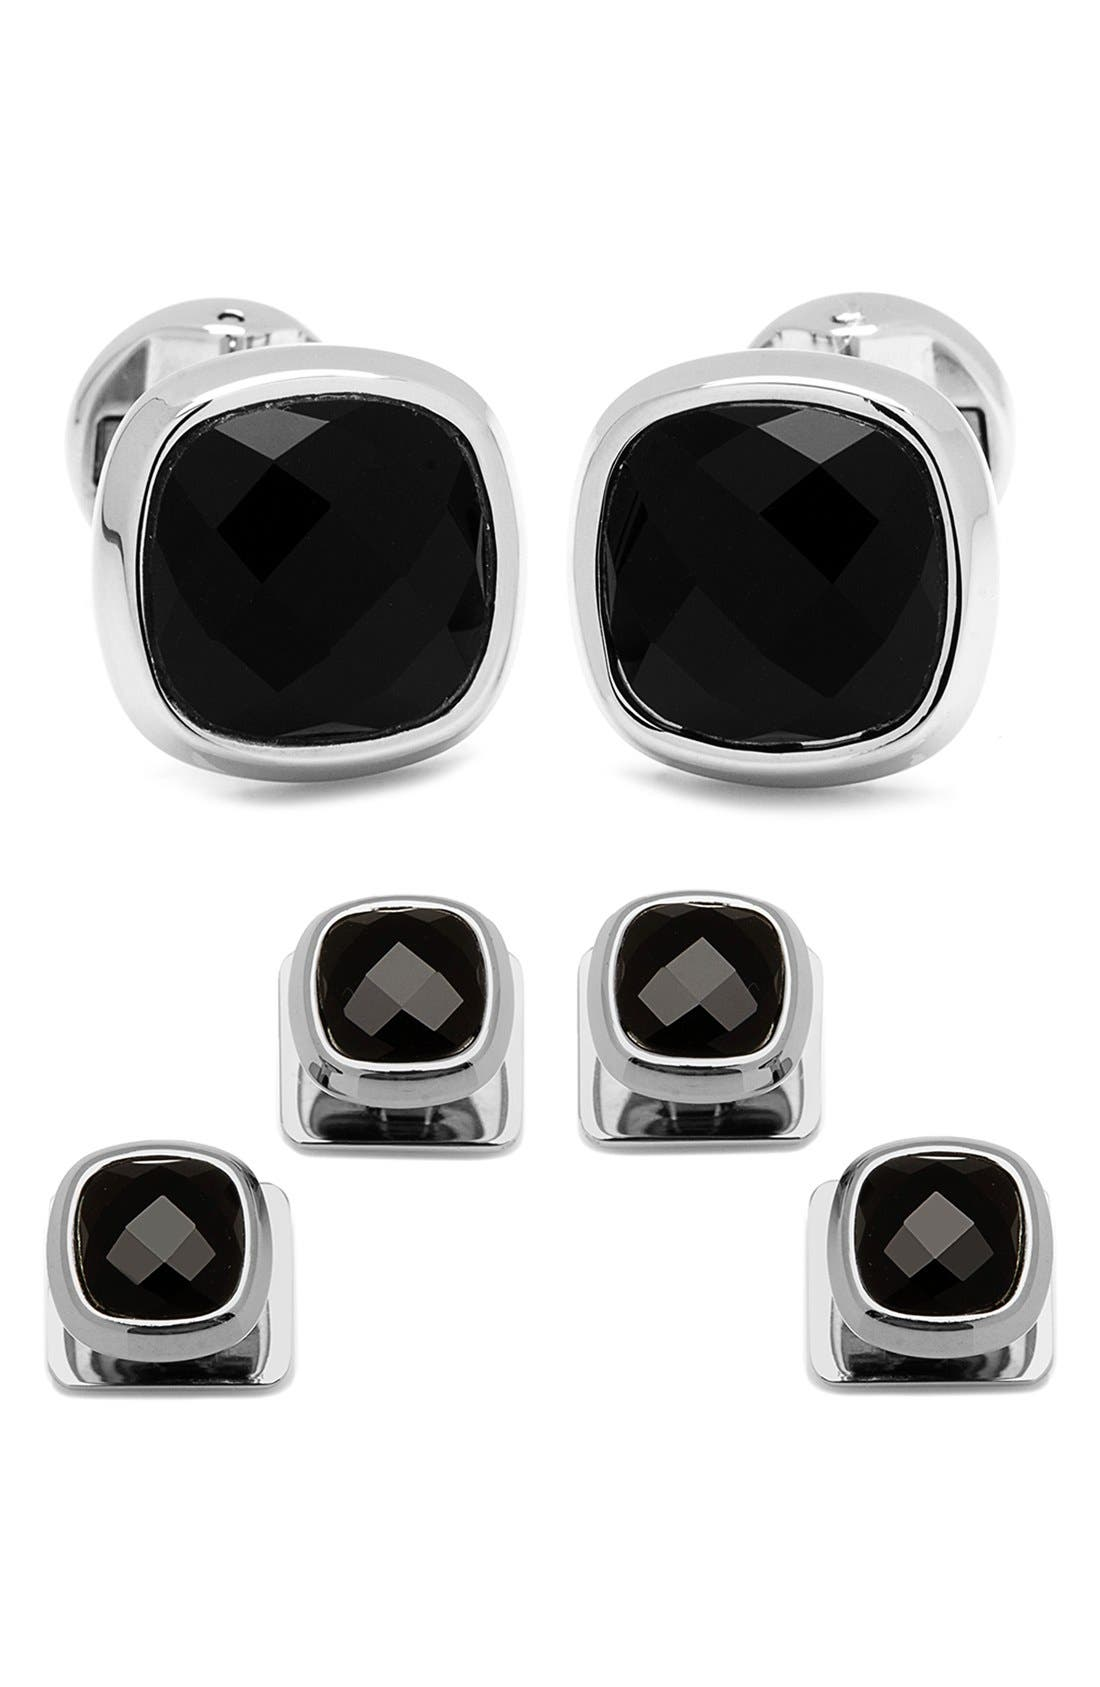 Onyx Cuff Links & Shirt Stud Set,                             Main thumbnail 1, color,                             001